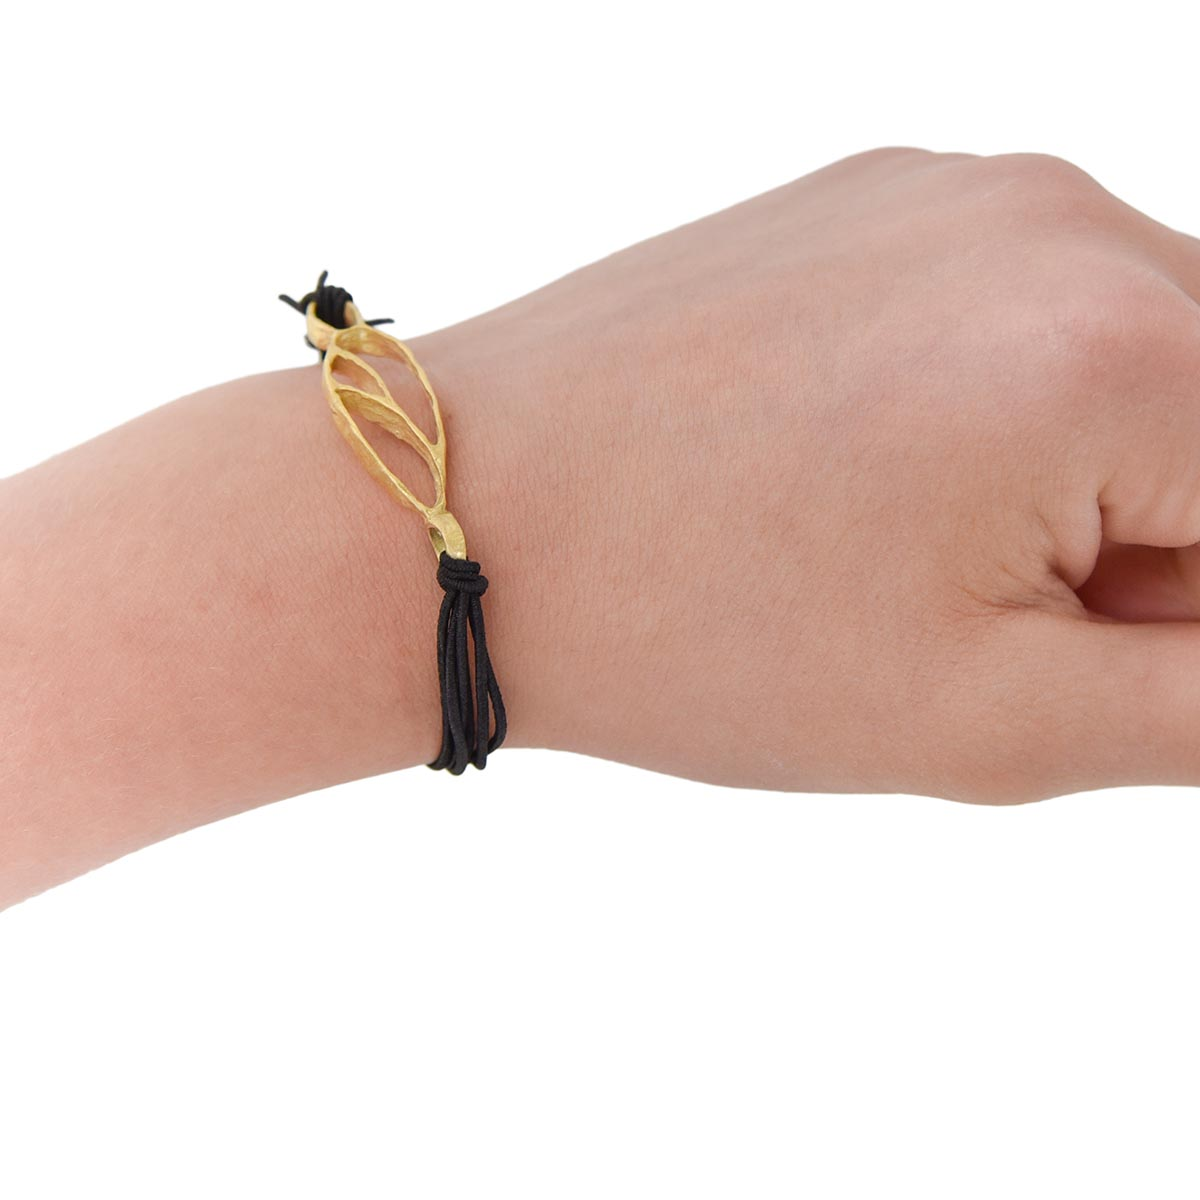 Bracelet with bronze handmade charm and elastic cord. Made for Bead A Boo Jewelry by Katerina Glinou.